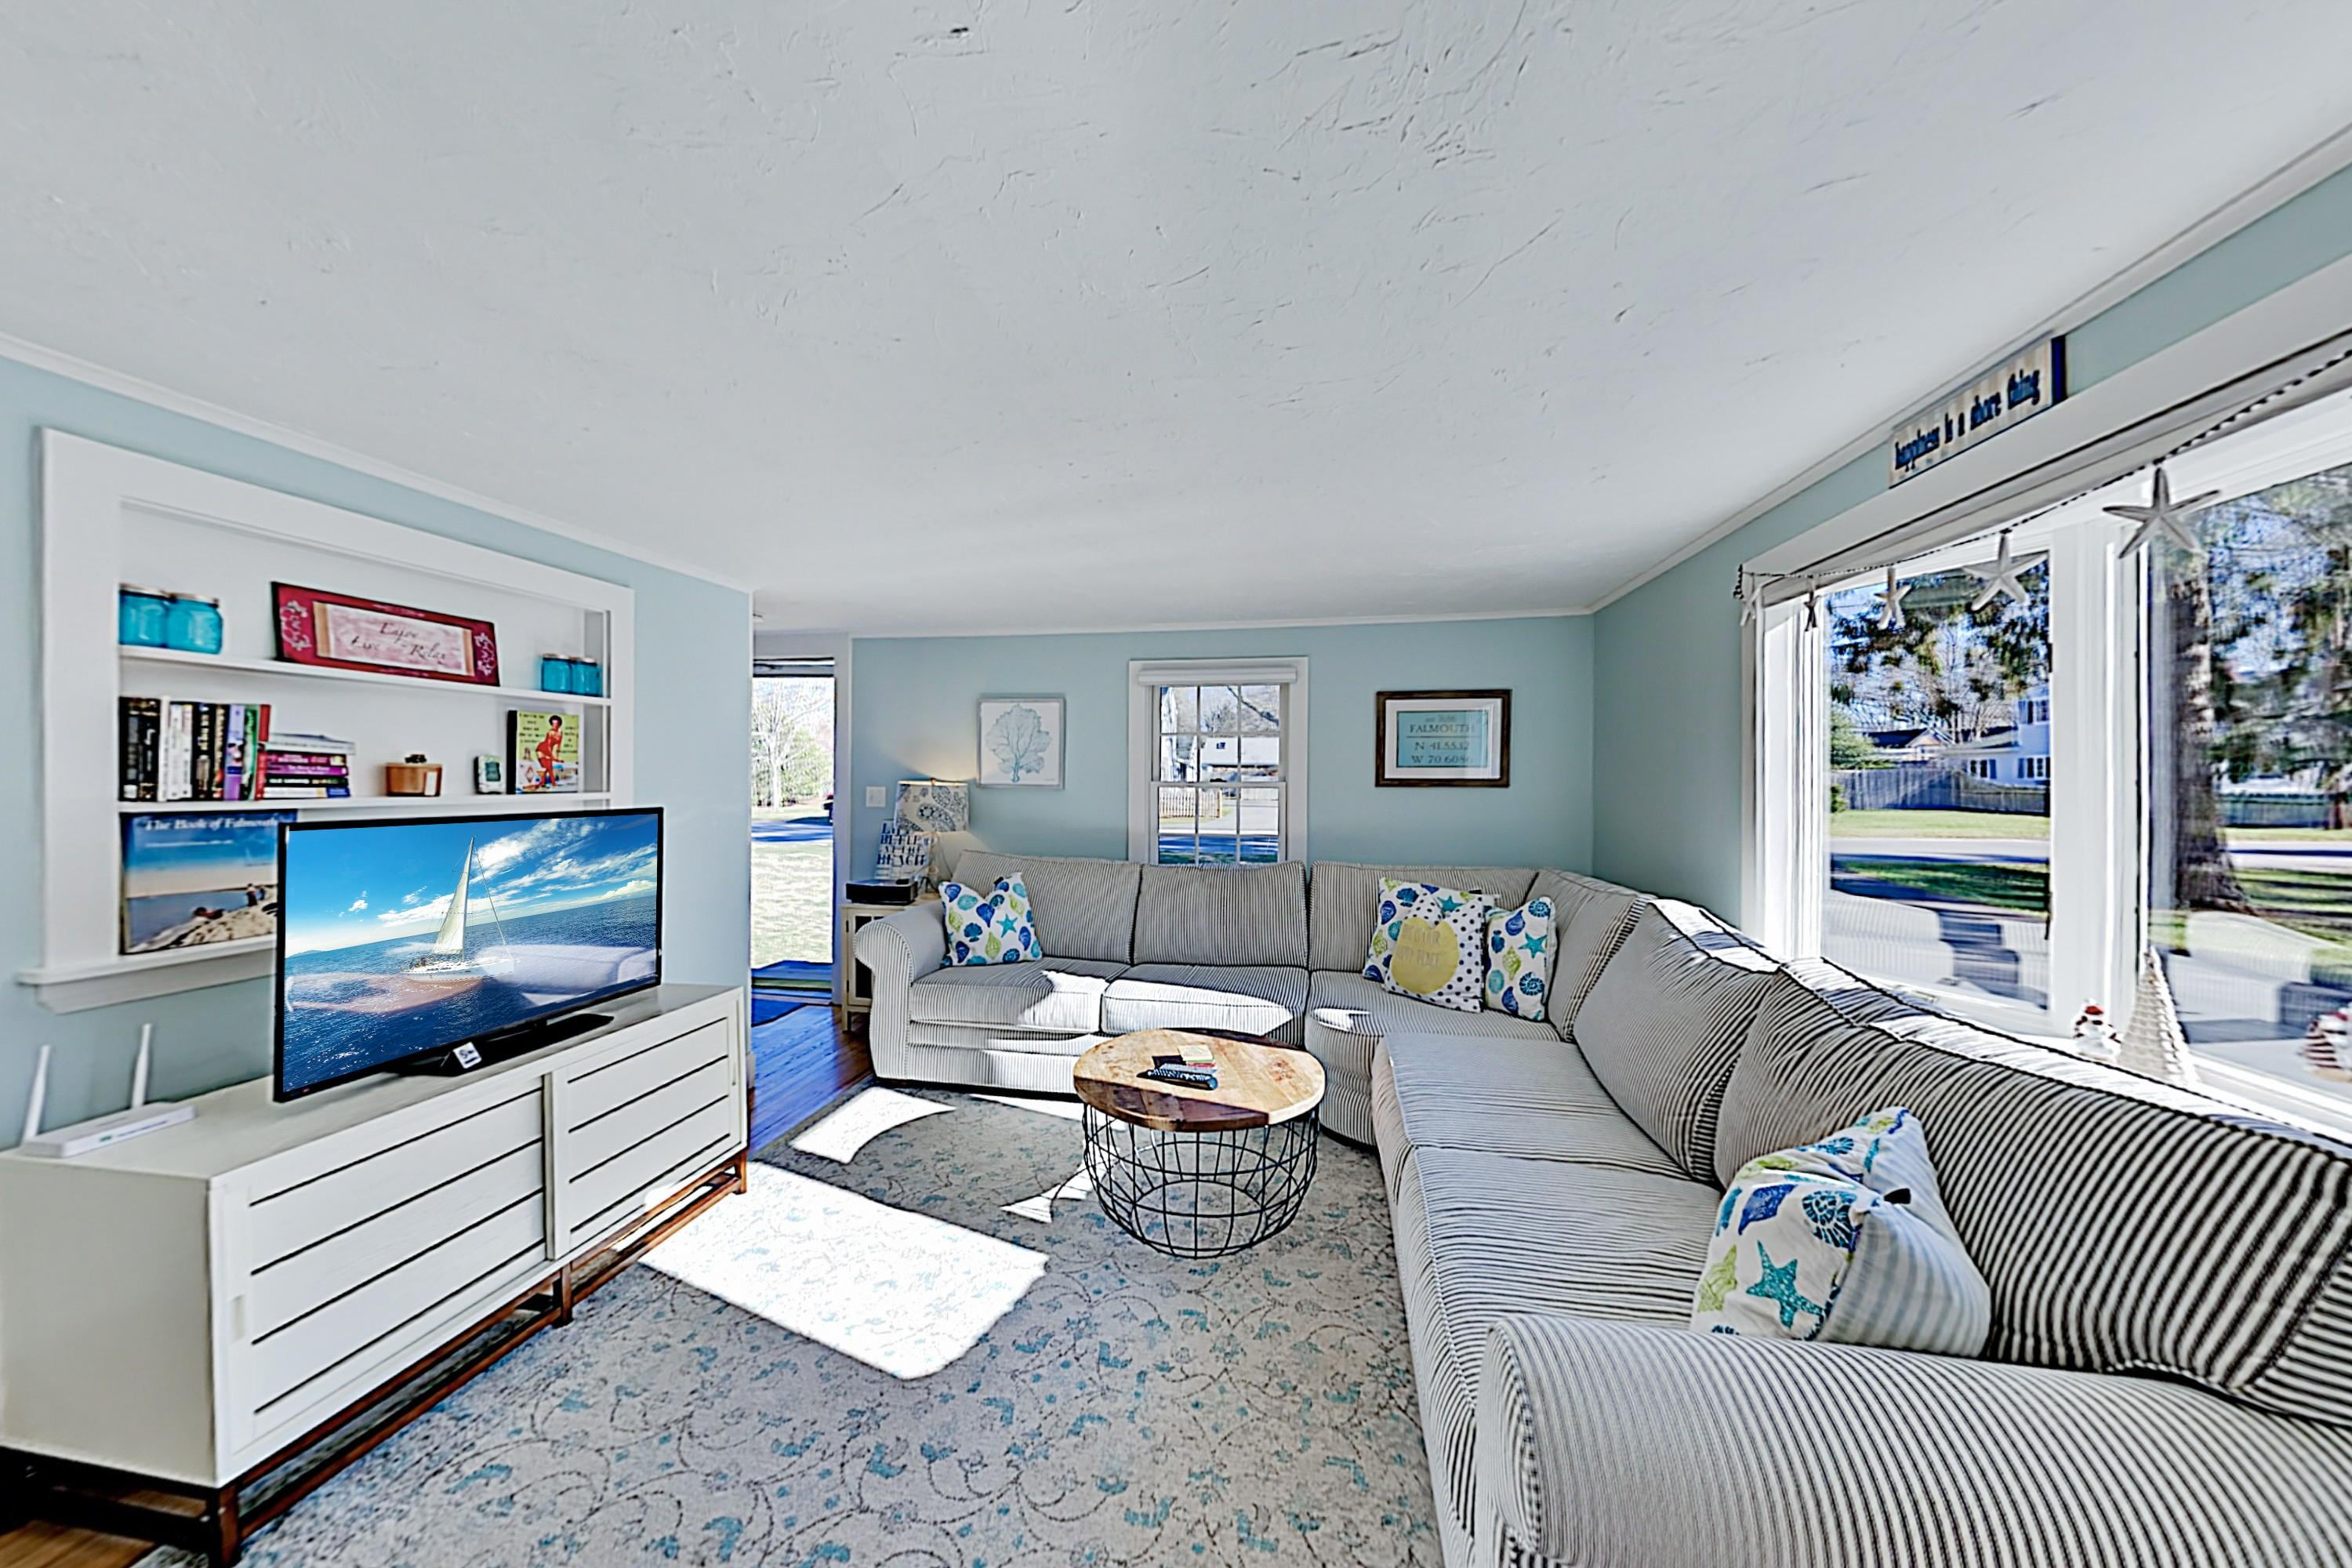 Welcome to Falmouth Heights! This home is professionally managed by TurnKey Vacation Rentals.